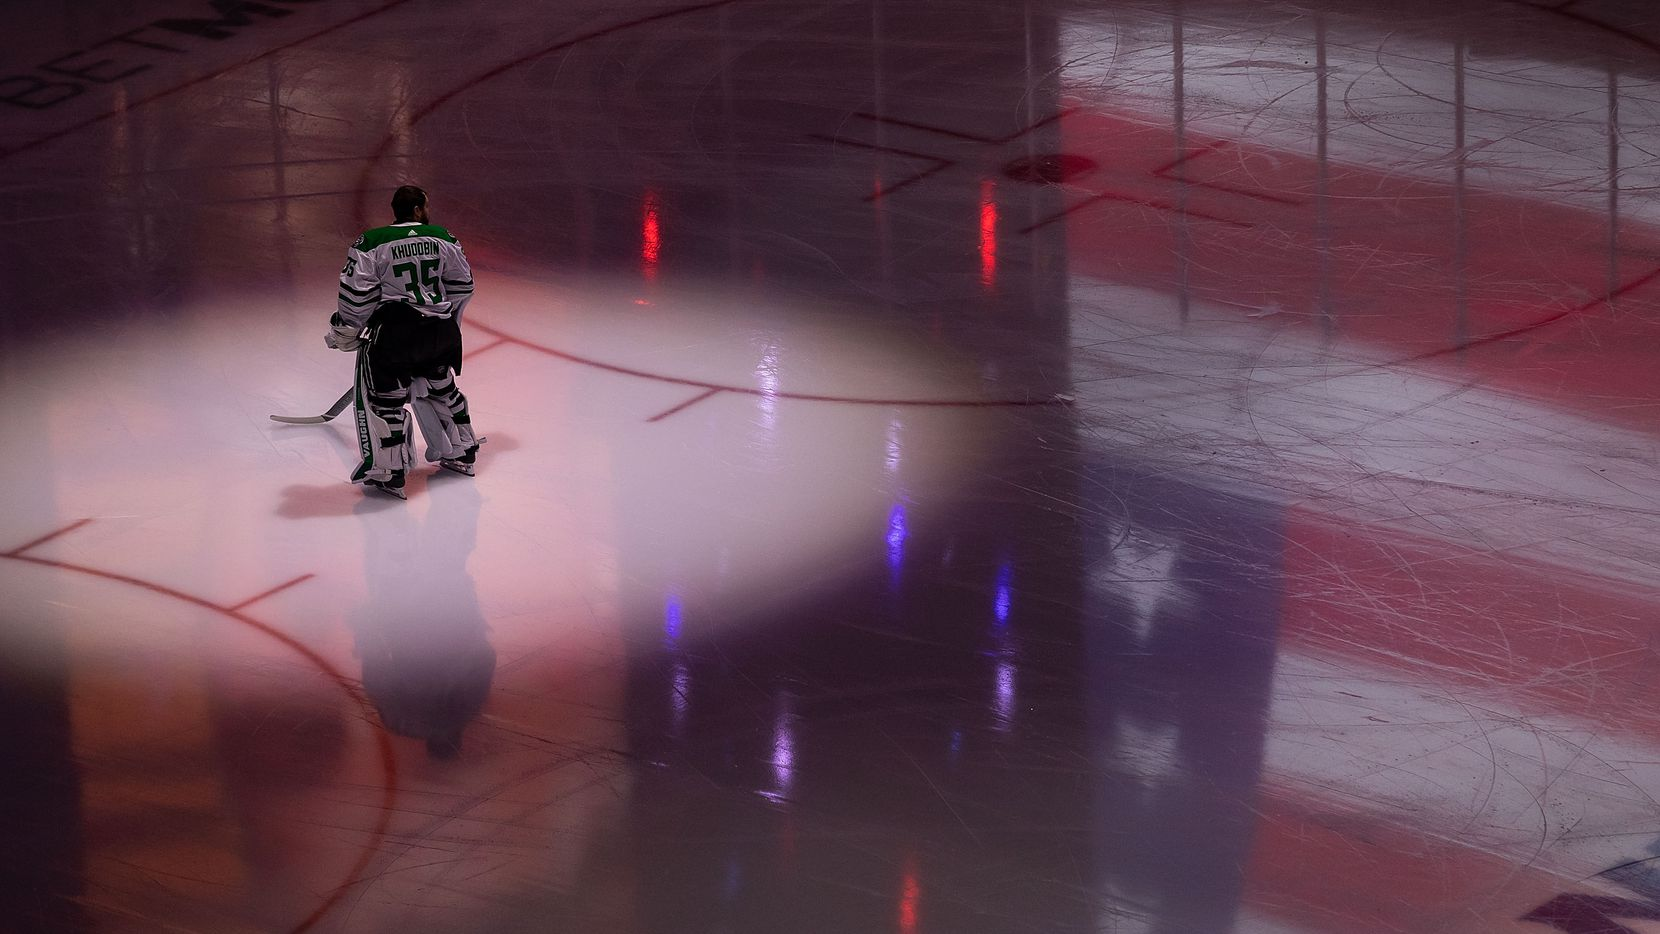 Goaltender Anton Khudobin (35) of the Dallas Stars stands during the anthem during Game Two of the Stanley Cup Final against the Tampa Bay Lightning at Rogers Place in Edmonton, Alberta, Canada on Monday, September 21, 2020.